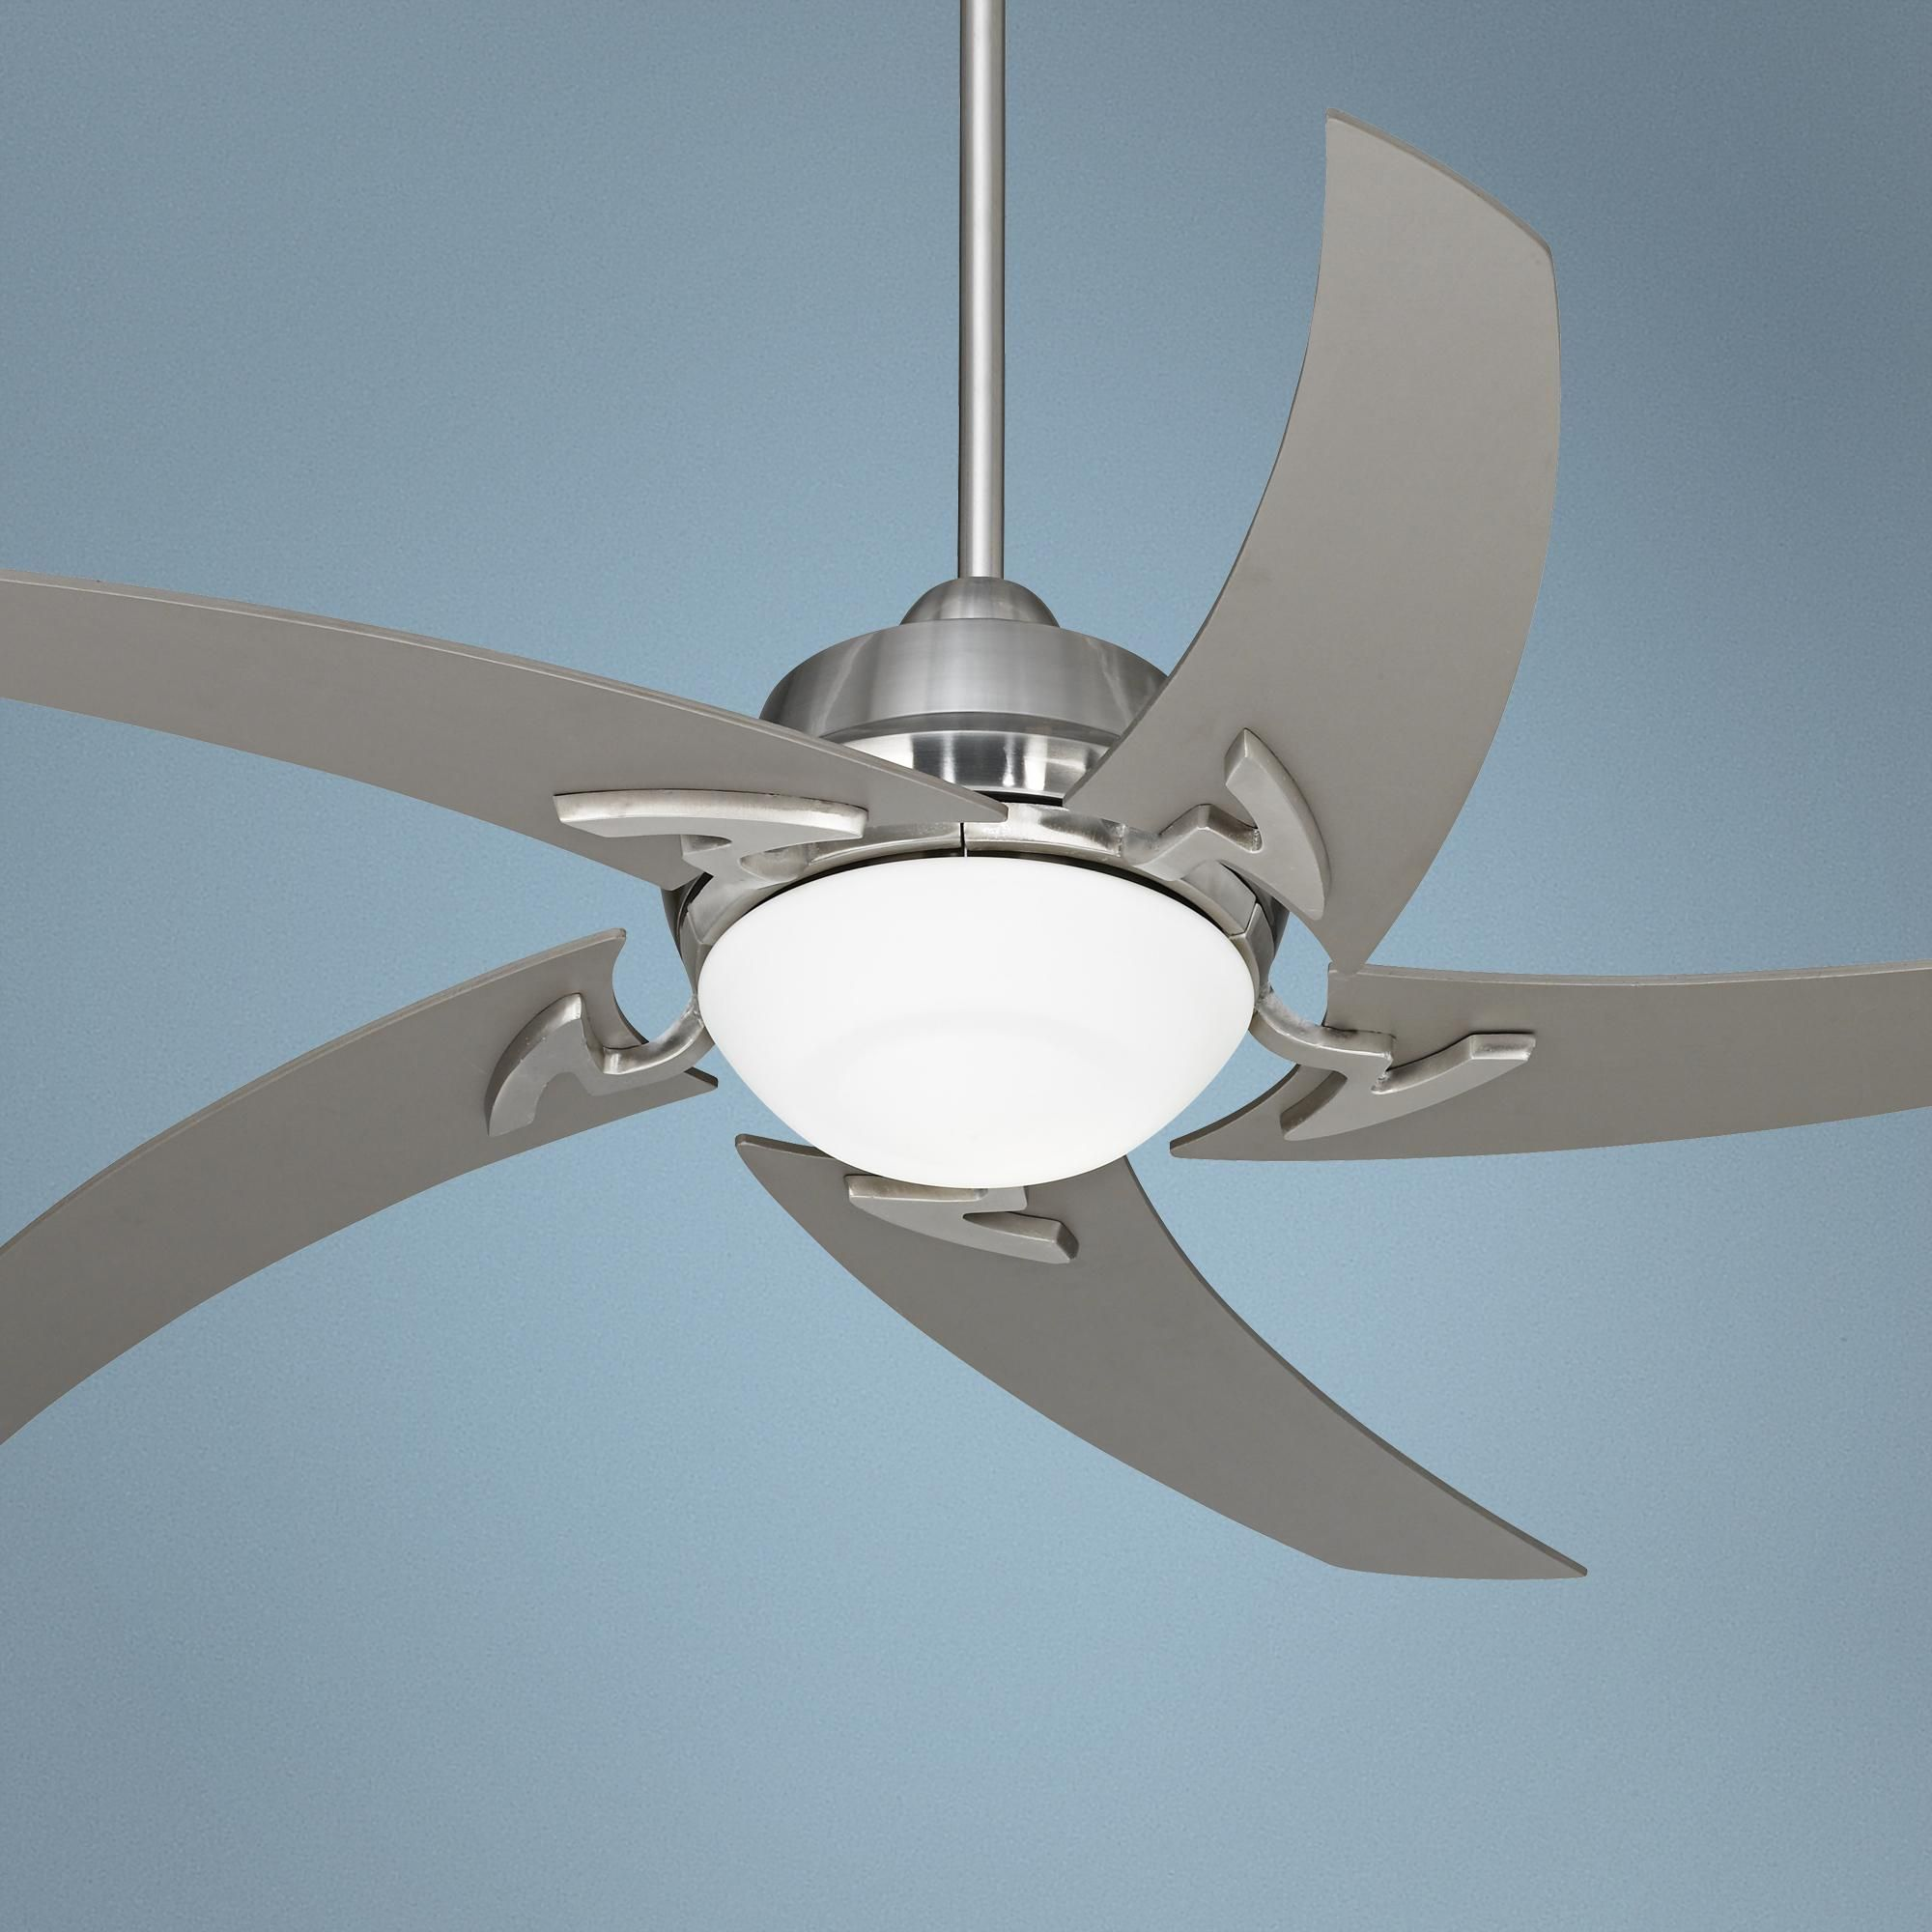 Contemporary Ceiling Fans Brushed Nickel 52 Quot Casa Vieja Capri Brushed Nickel Ceiling Fan With Light